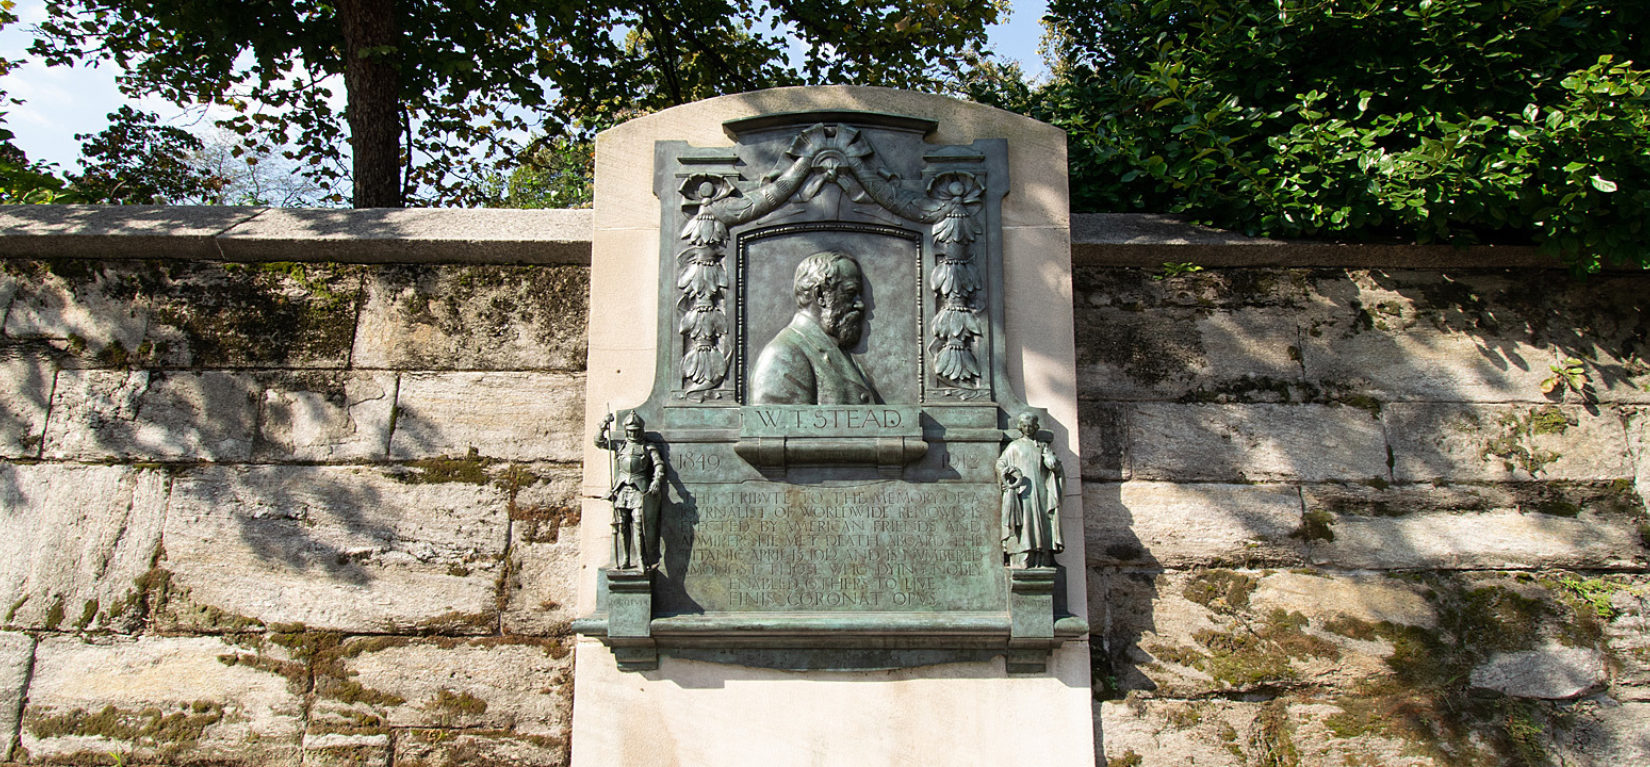 The memorial plaque viewed on the perimeter in summer